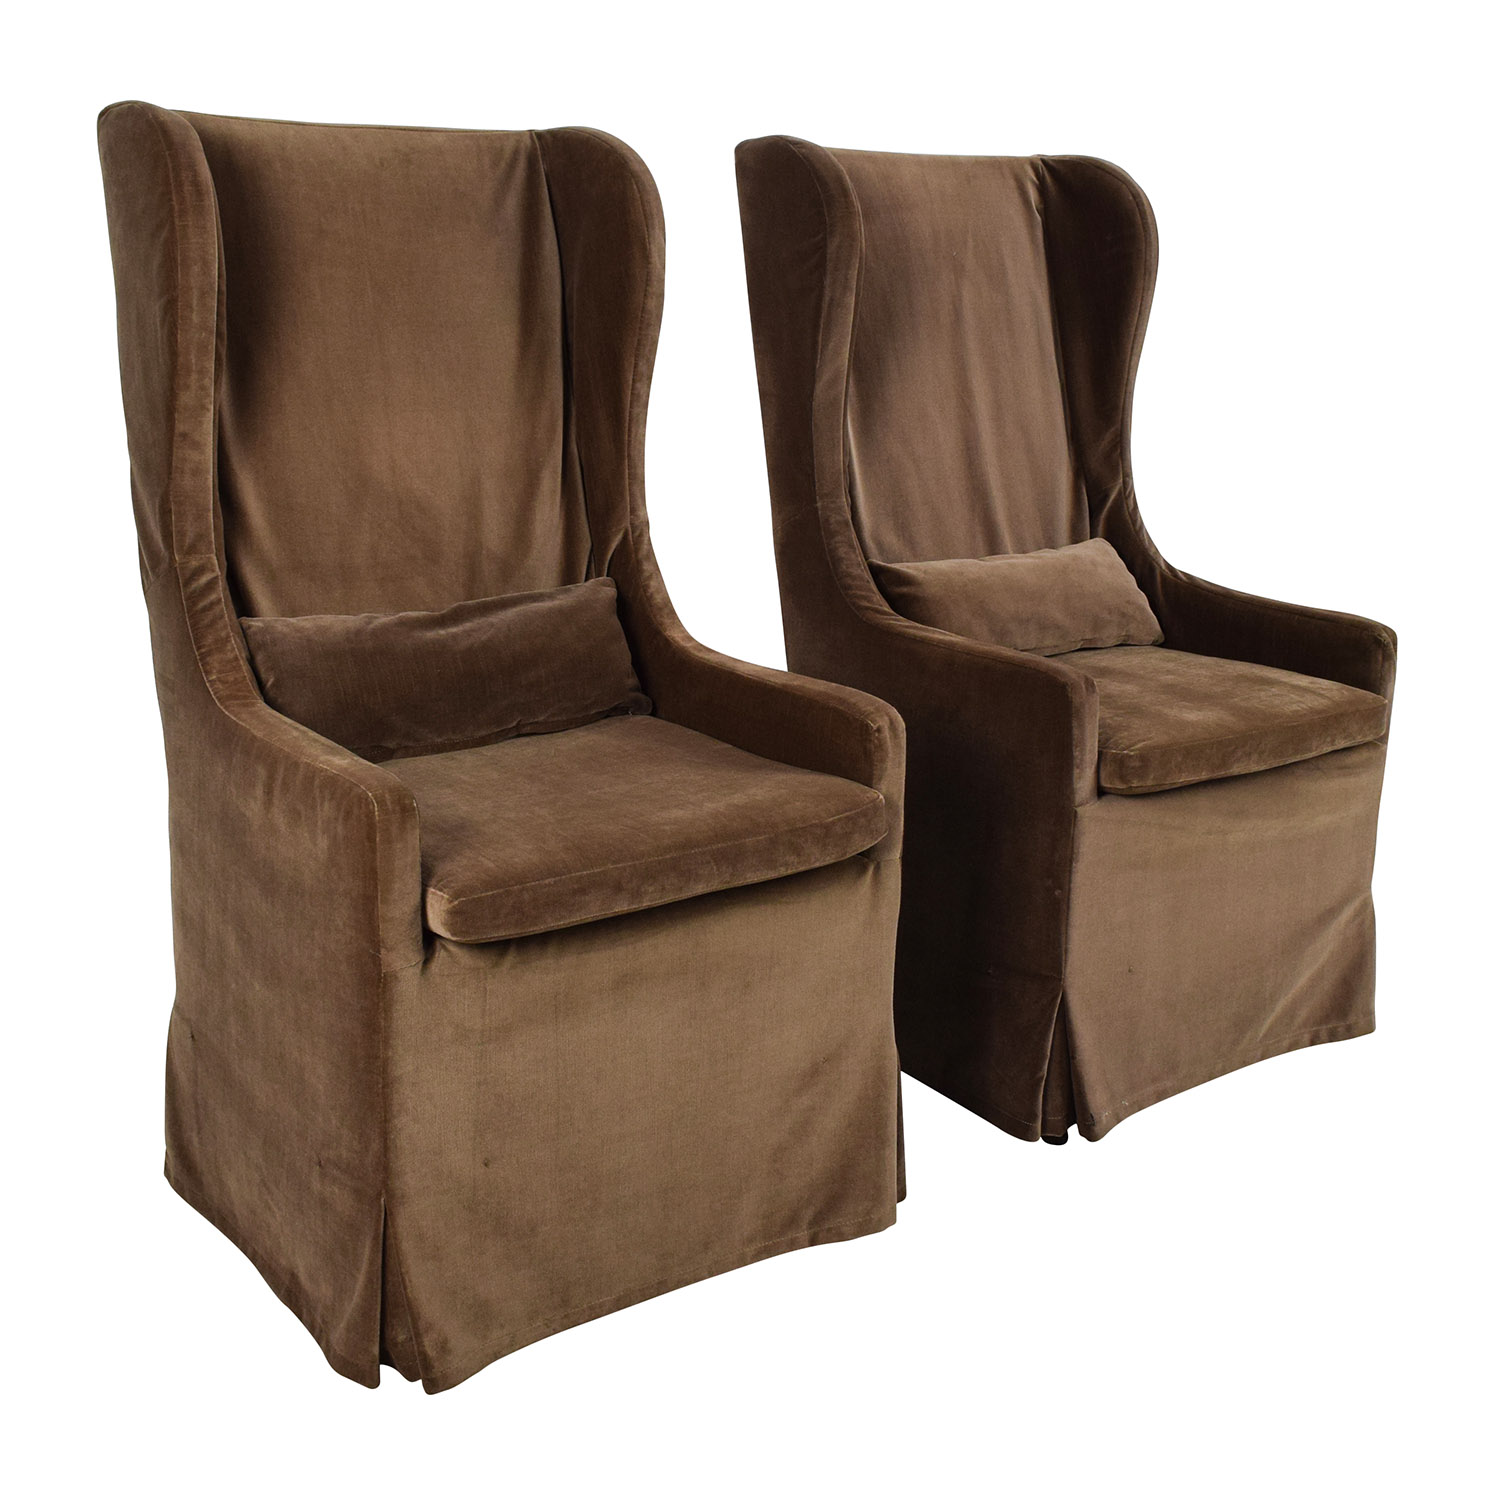 ... Buy Restoration Hardware Belgian Wingback Chair Pair Restoration  Hardware Chairs ...